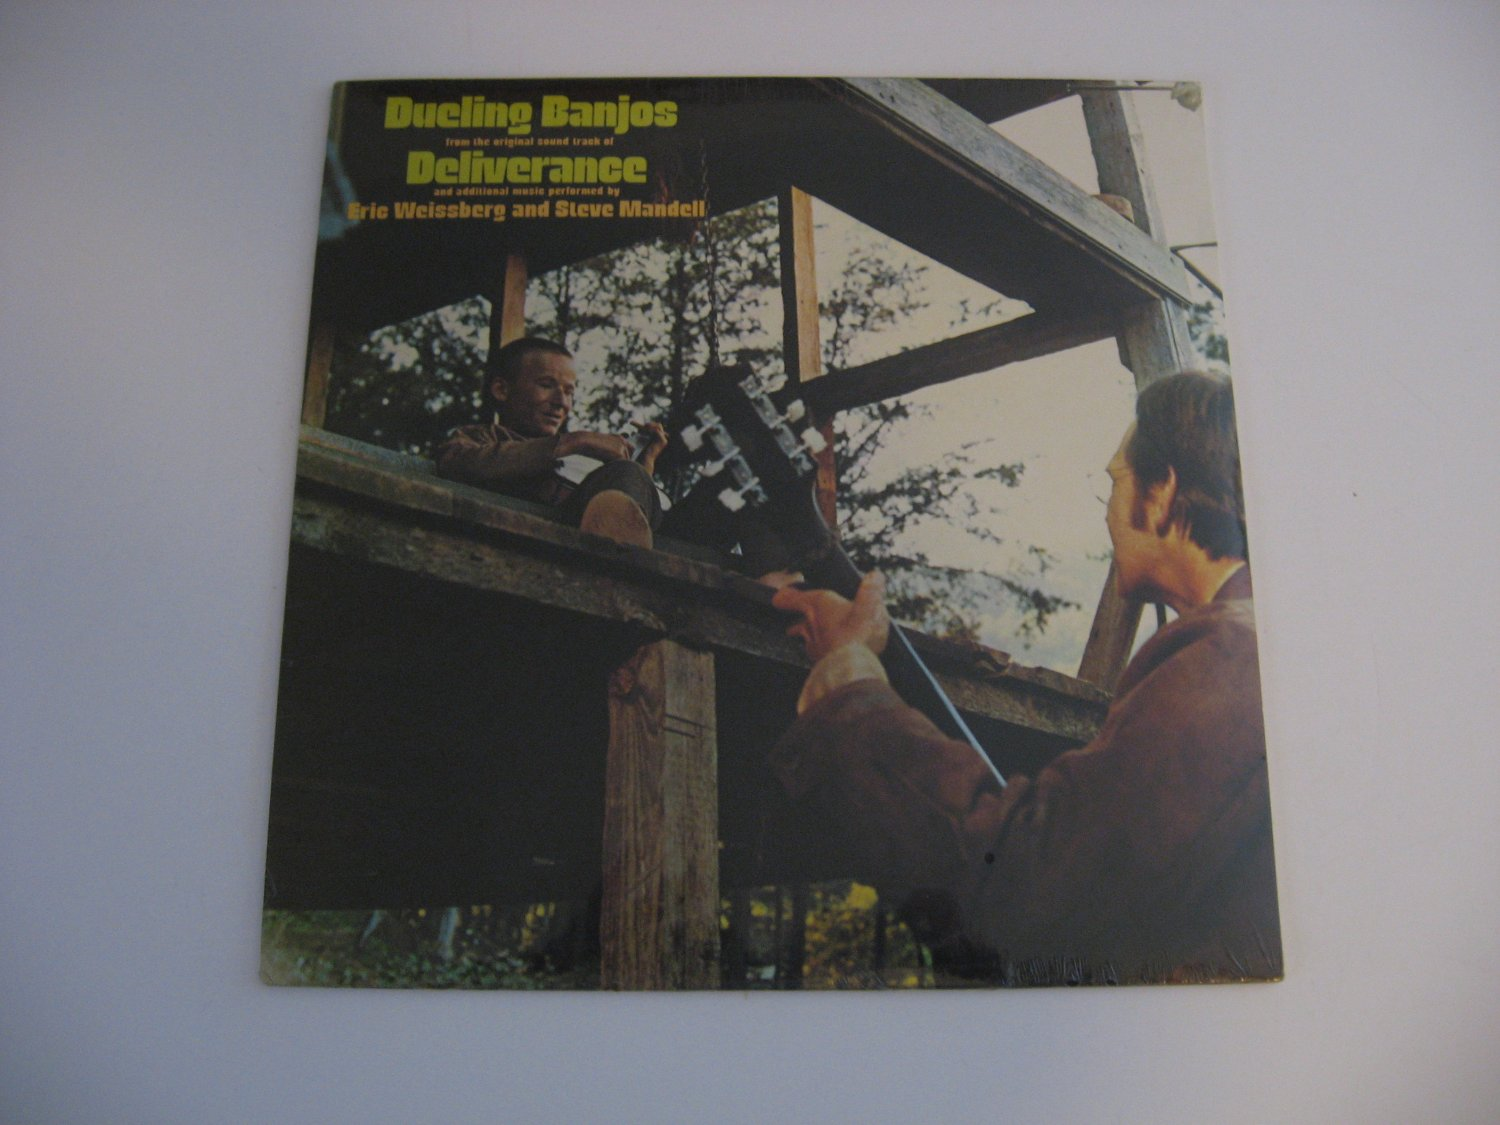 Factory Sealed - Eric Weissburg / Steve Mandell - Dueling Banjos - Circa 1973